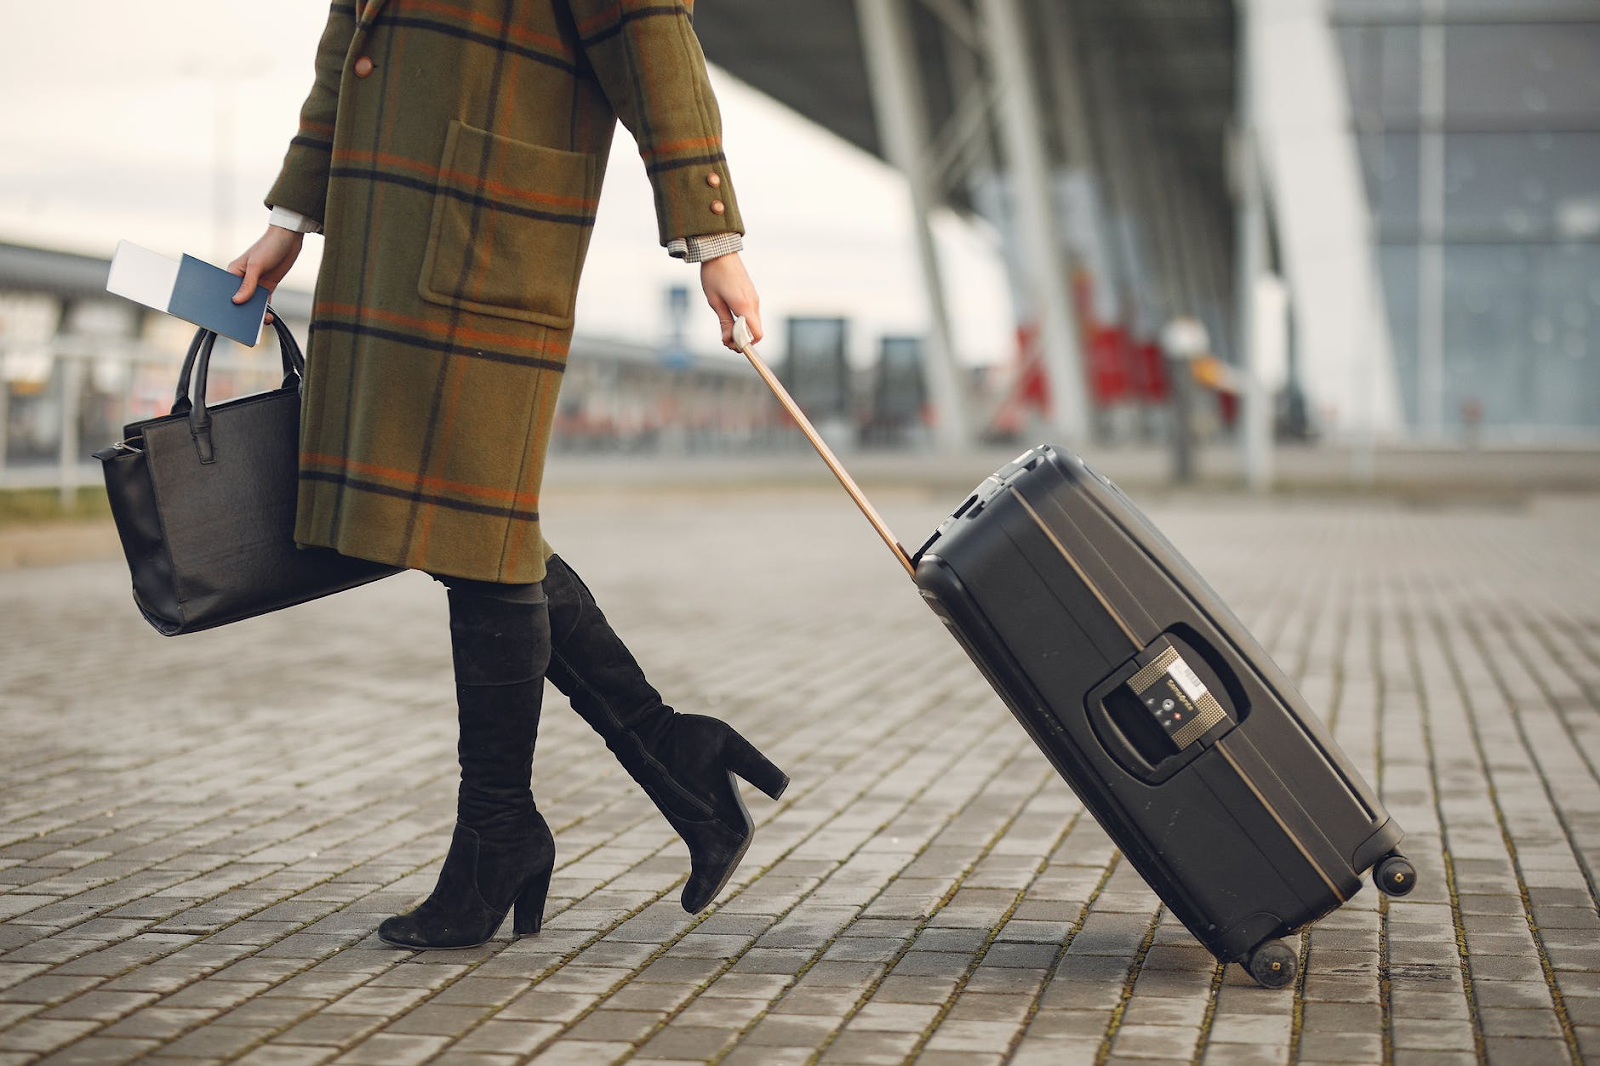 Important Safety Tips To Remember When Traveling Overseas For The First Time